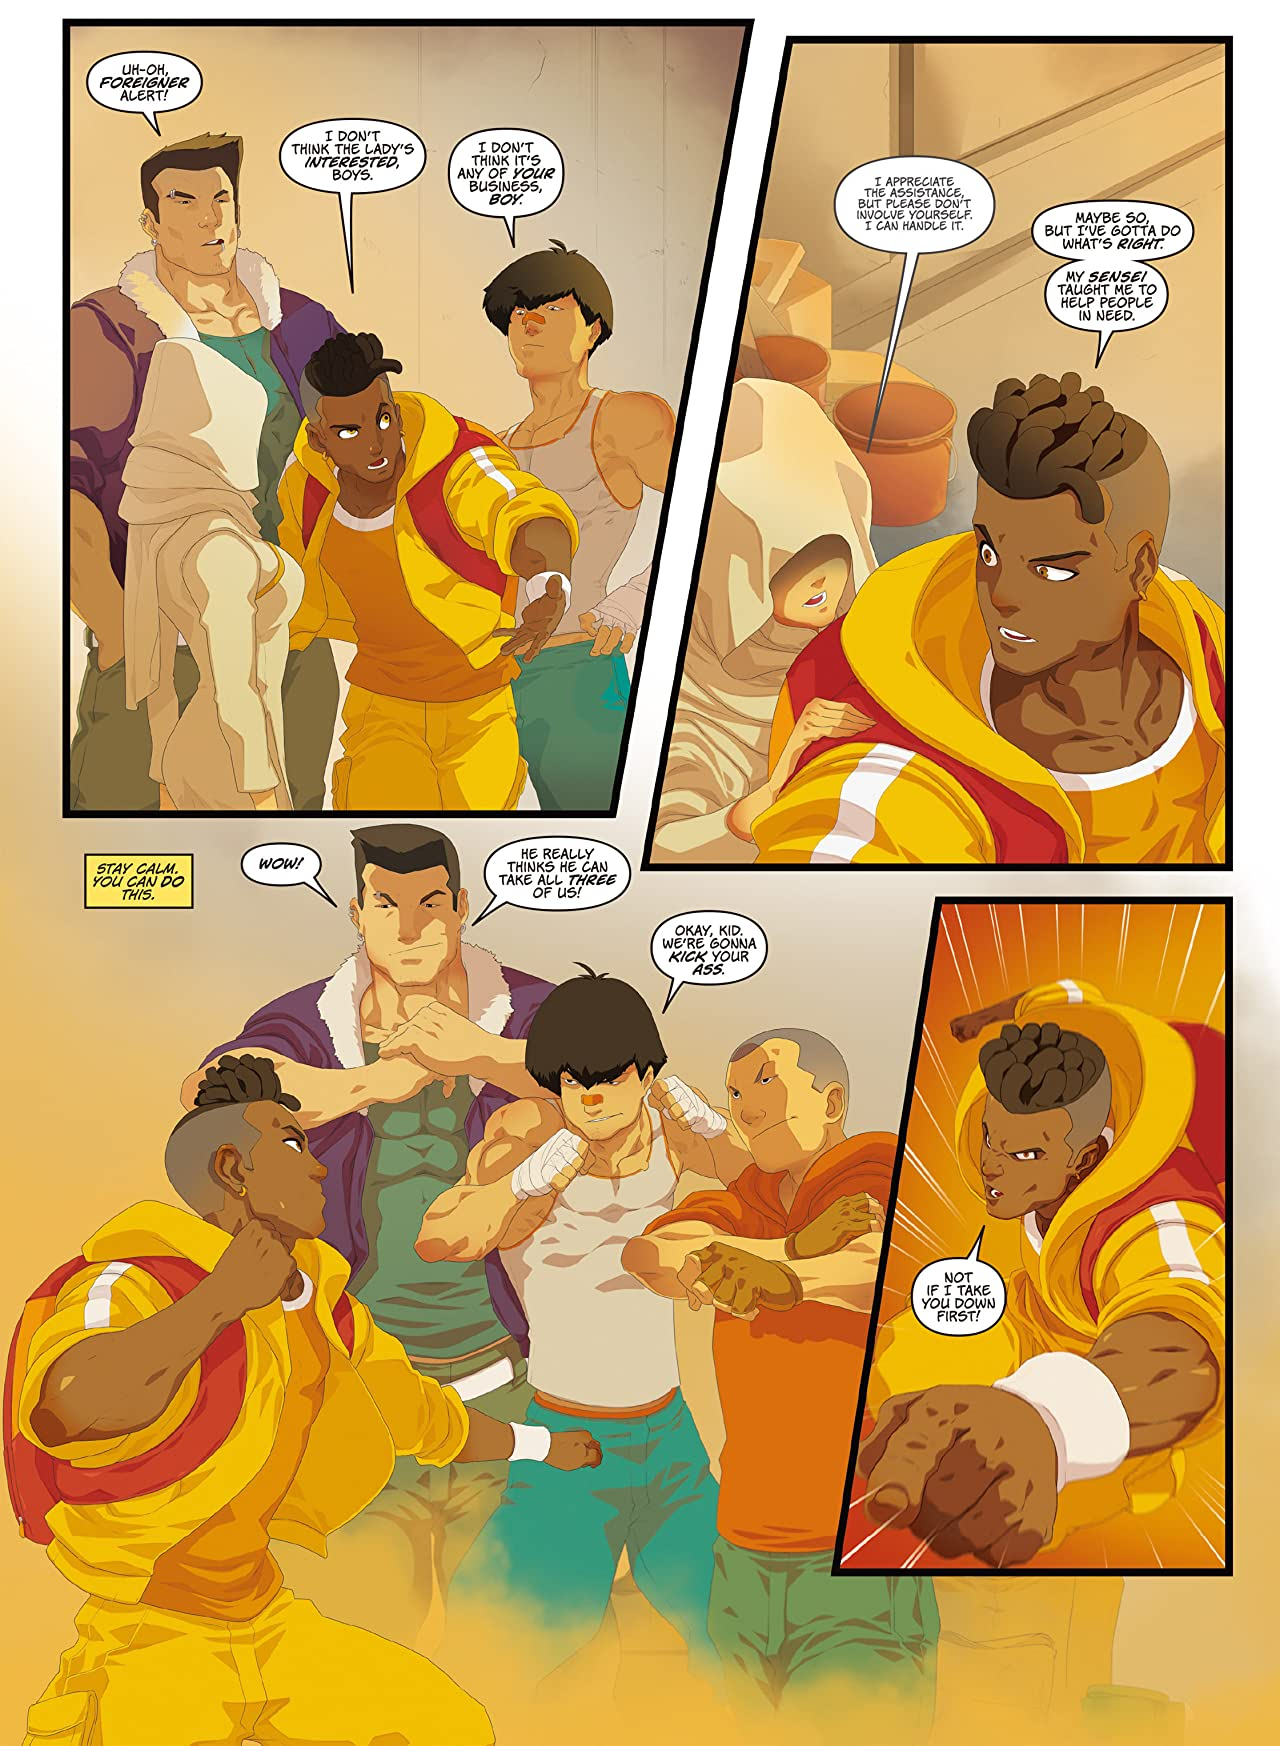 Super Street Fighter #5